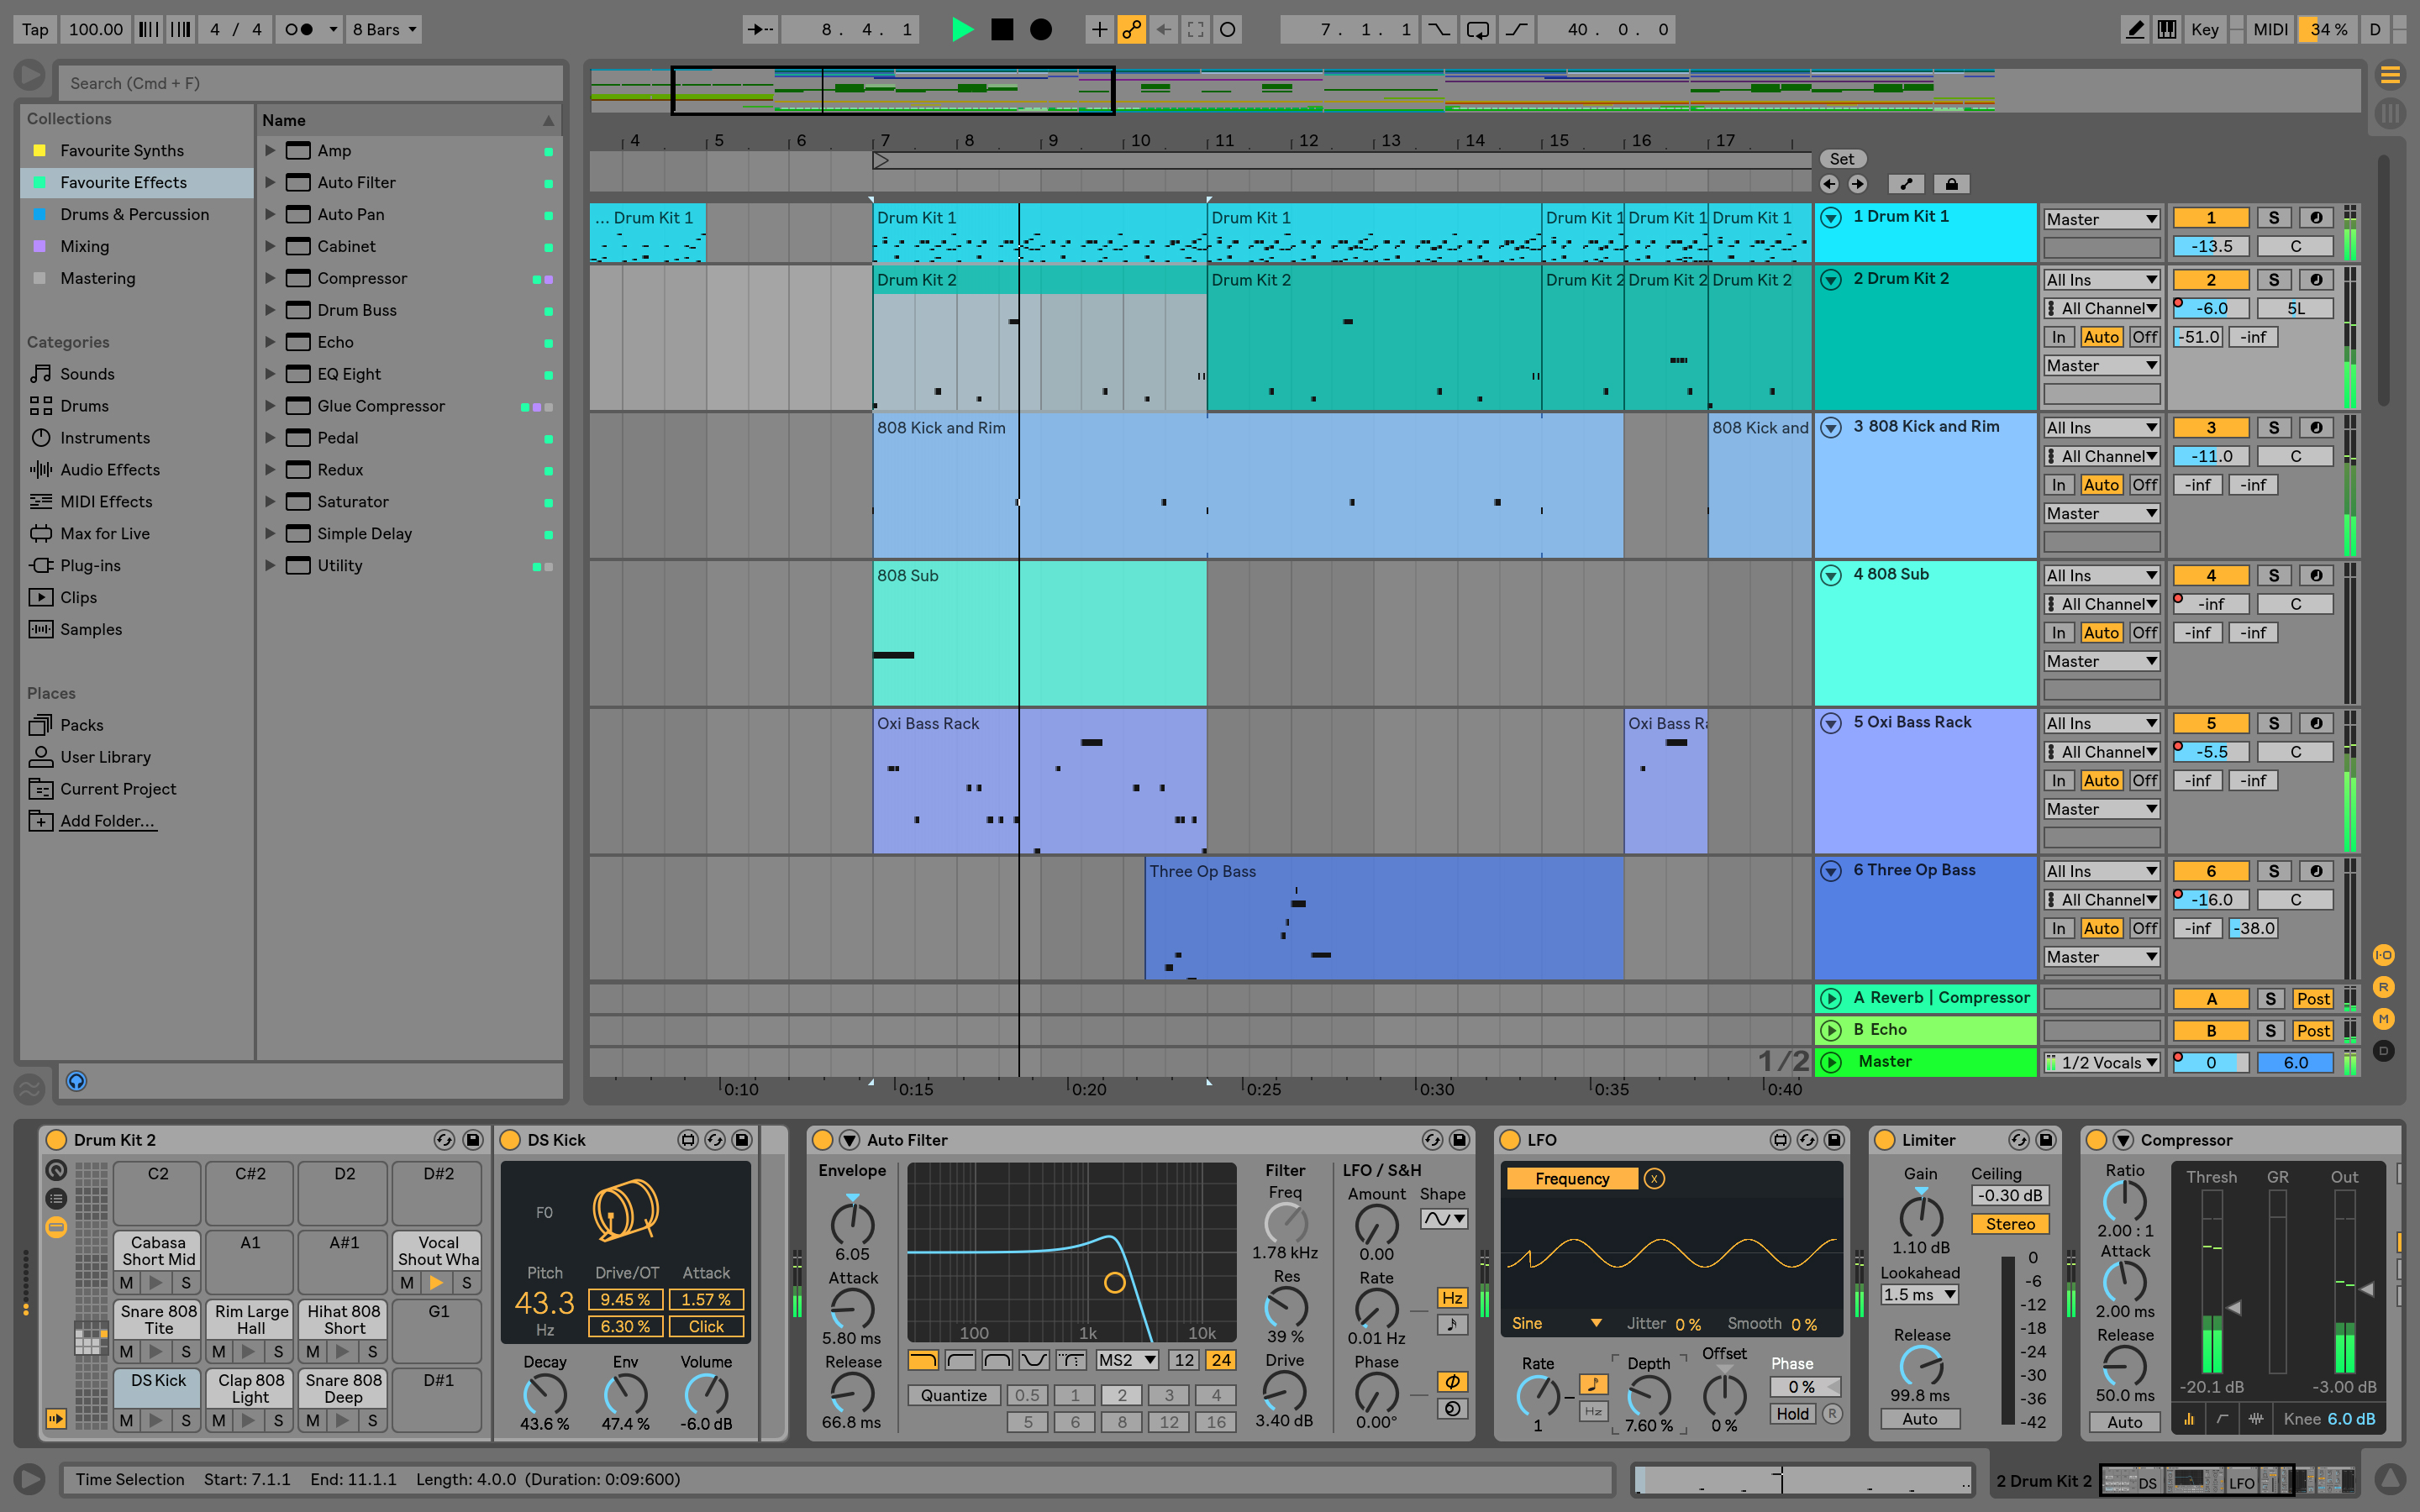 Ableton announces Live 10 - these are the exciting new features you need to know about